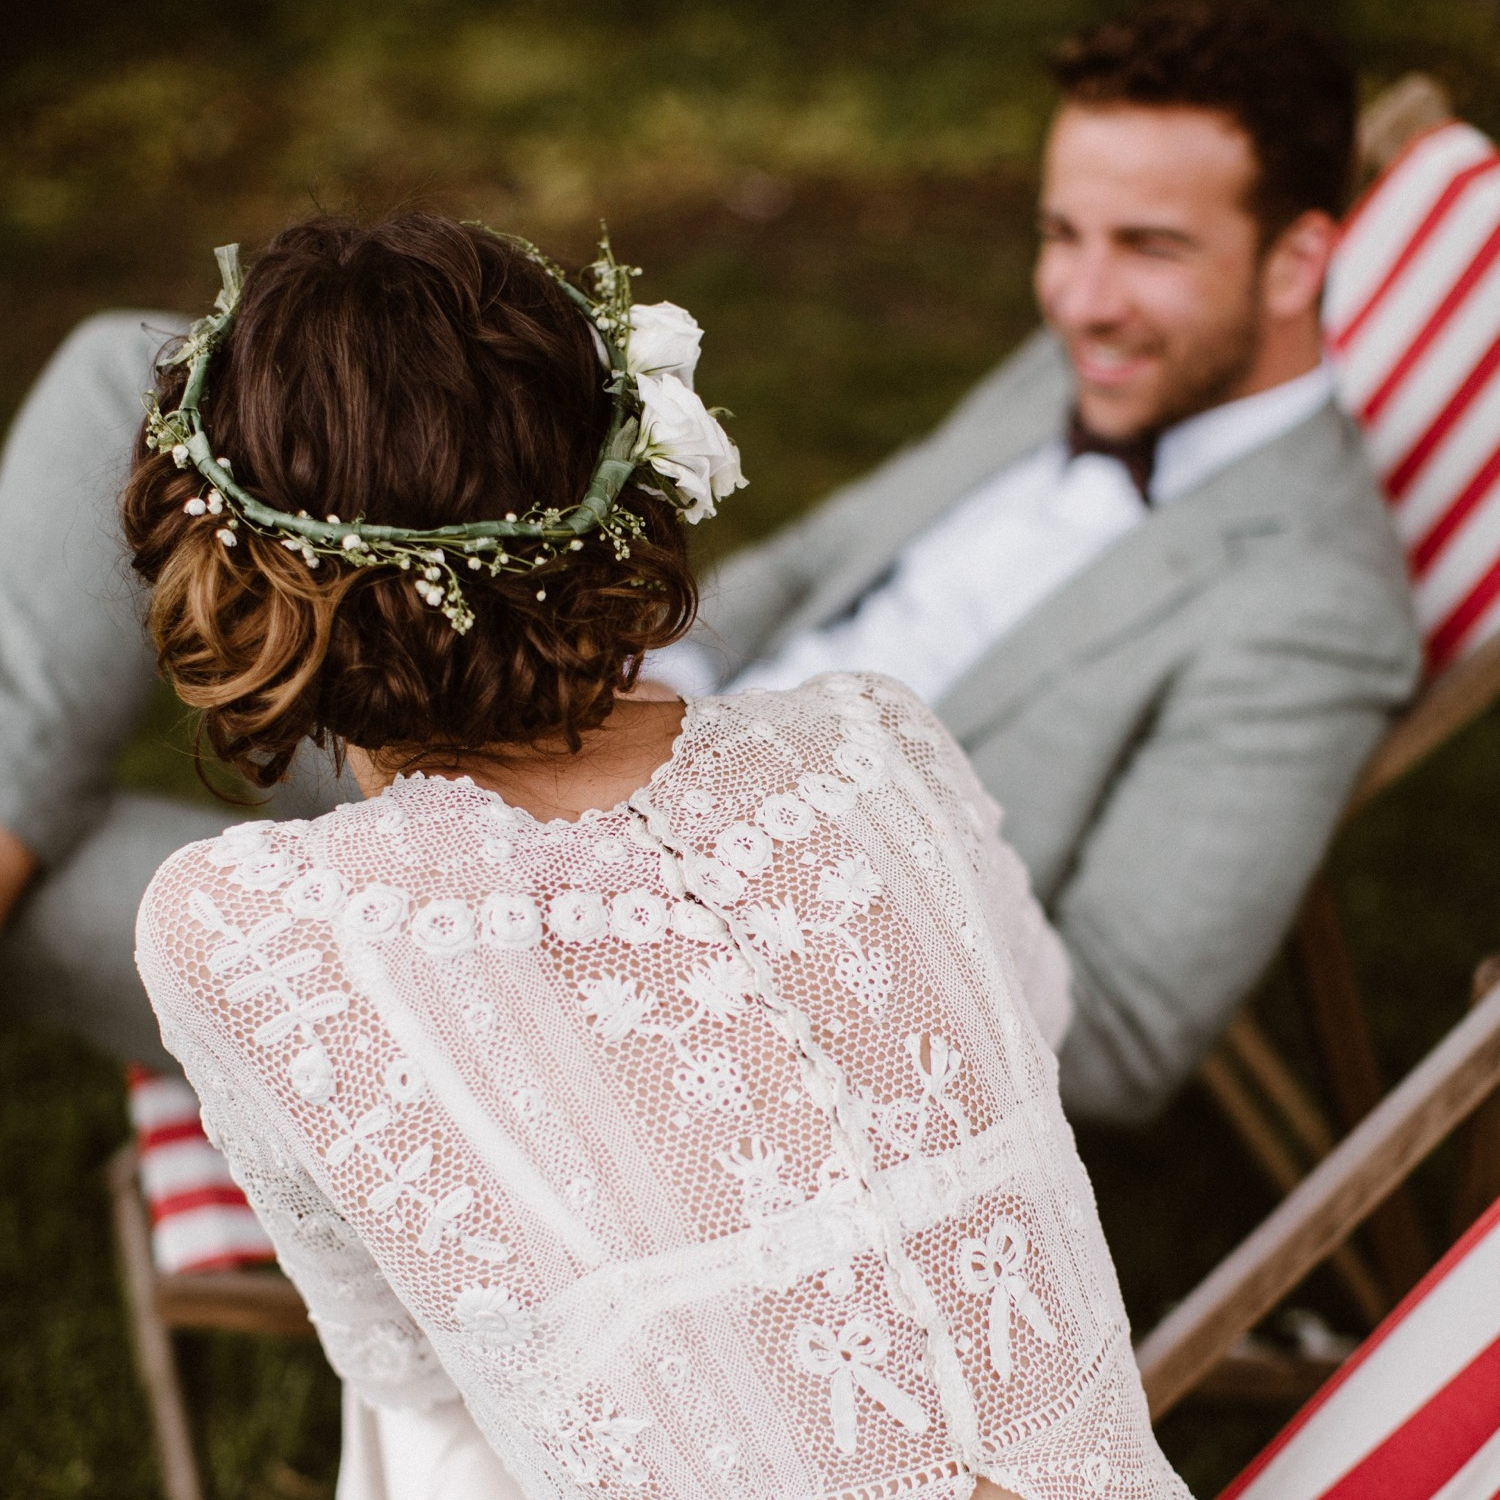 JOOST & STEFANIE  | THE NETHERLANDS